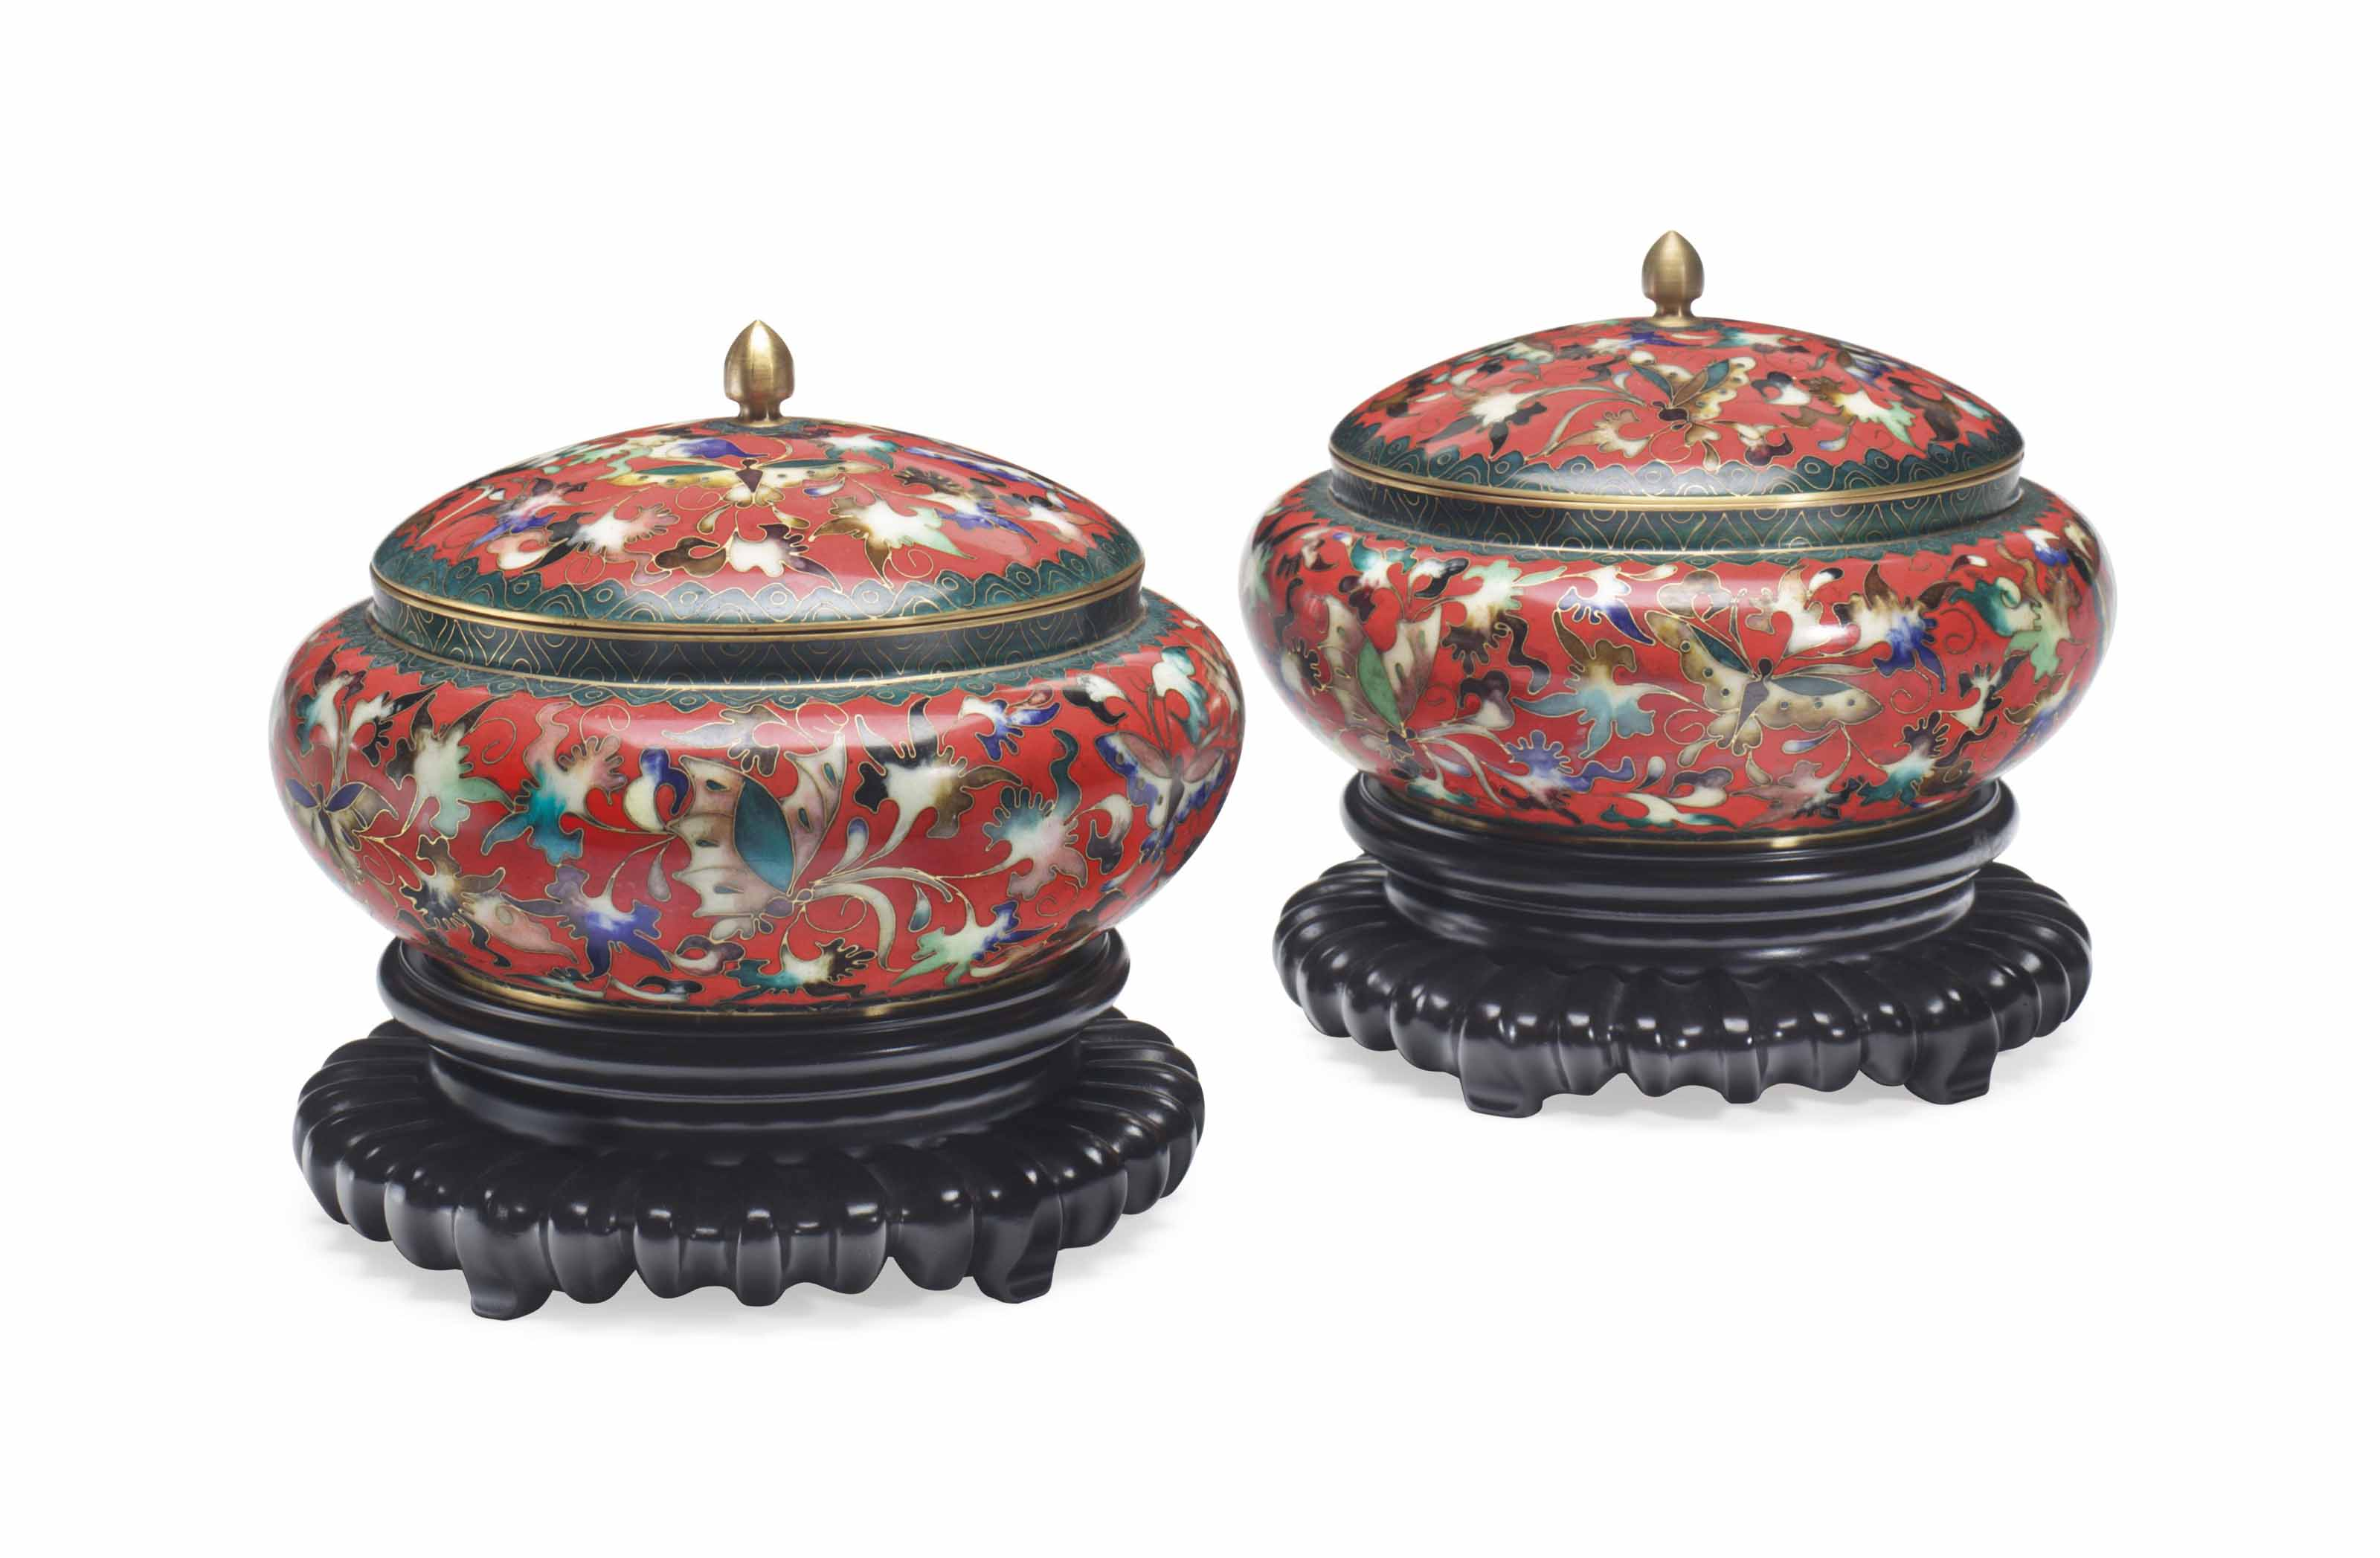 PRESIDENT AND MRS RONALD REAGAN A PAIR OF CHINESE CLOISONNÉ...